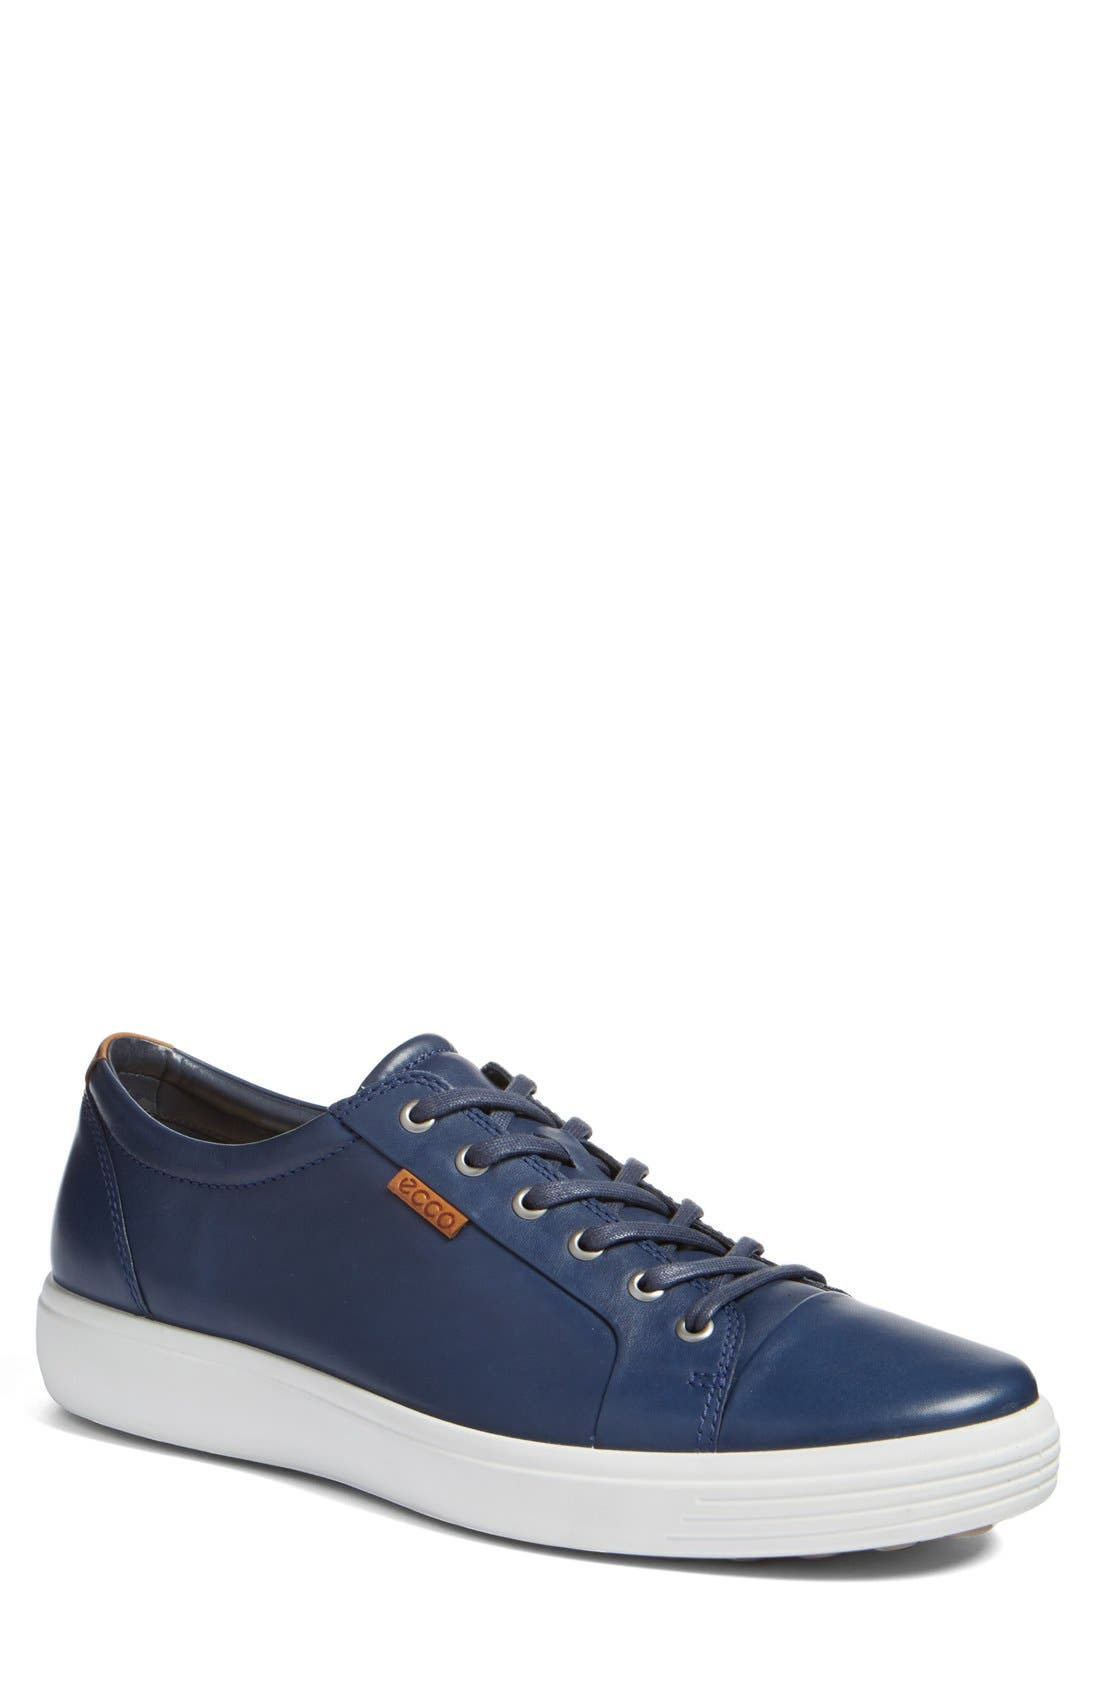 Soft VII Lace-Up Sneaker,                             Main thumbnail 1, color,                             NAVY LEATHER